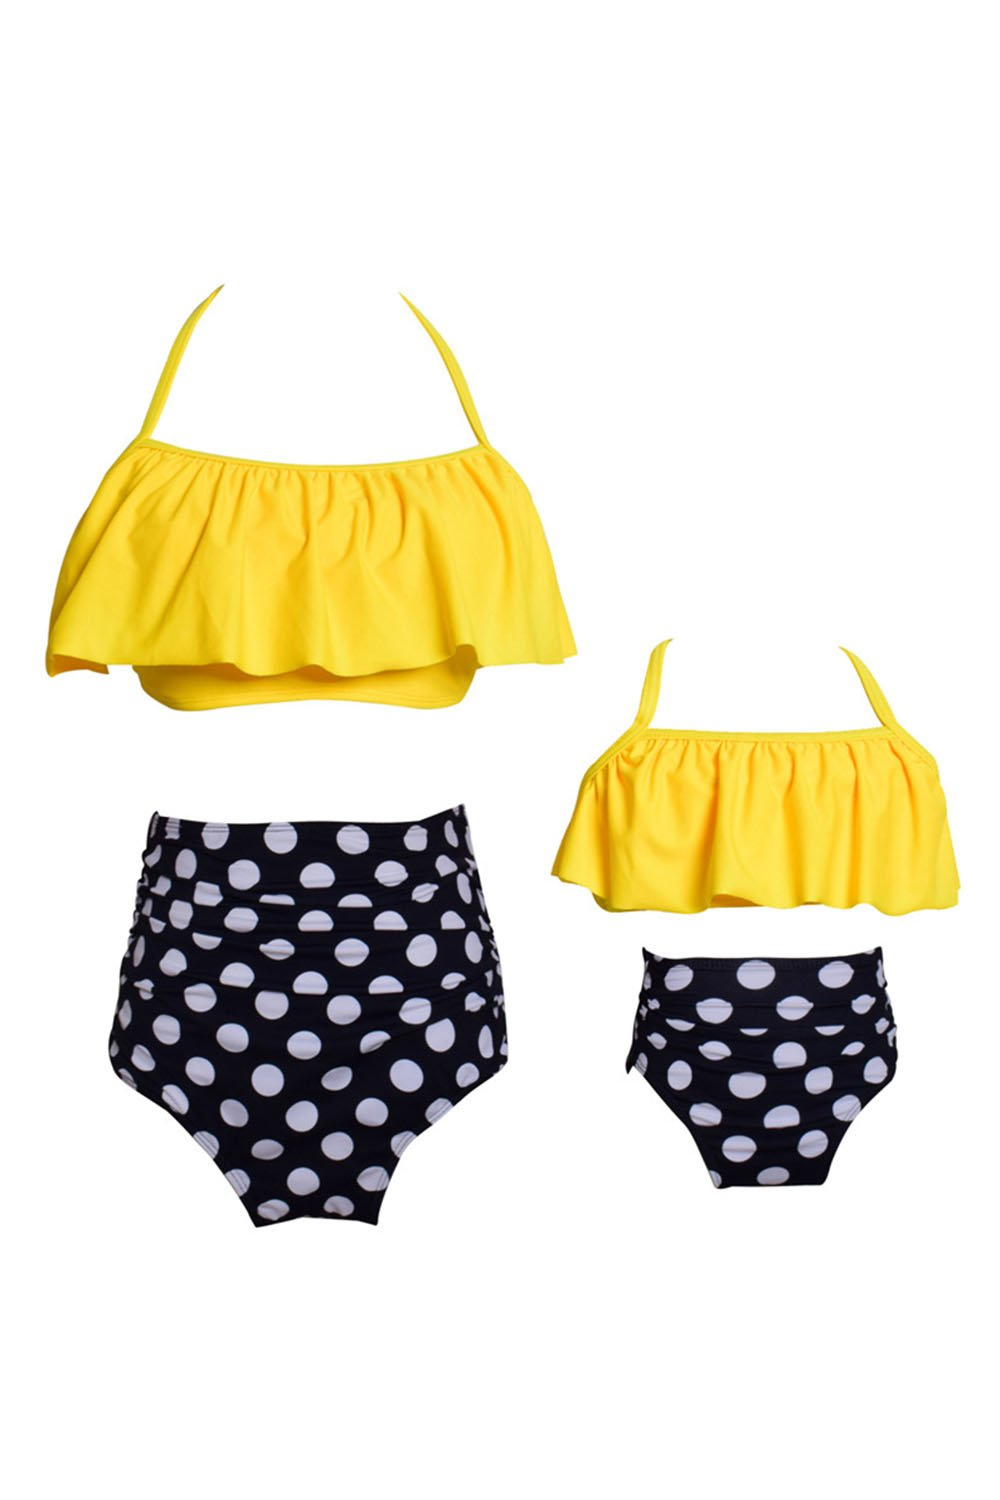 WIWIQS Summer Two-Piece Girls Bathing Suit Kid Girls Floral Pattern Halter Bikini Set (Yellow and DOT,L)